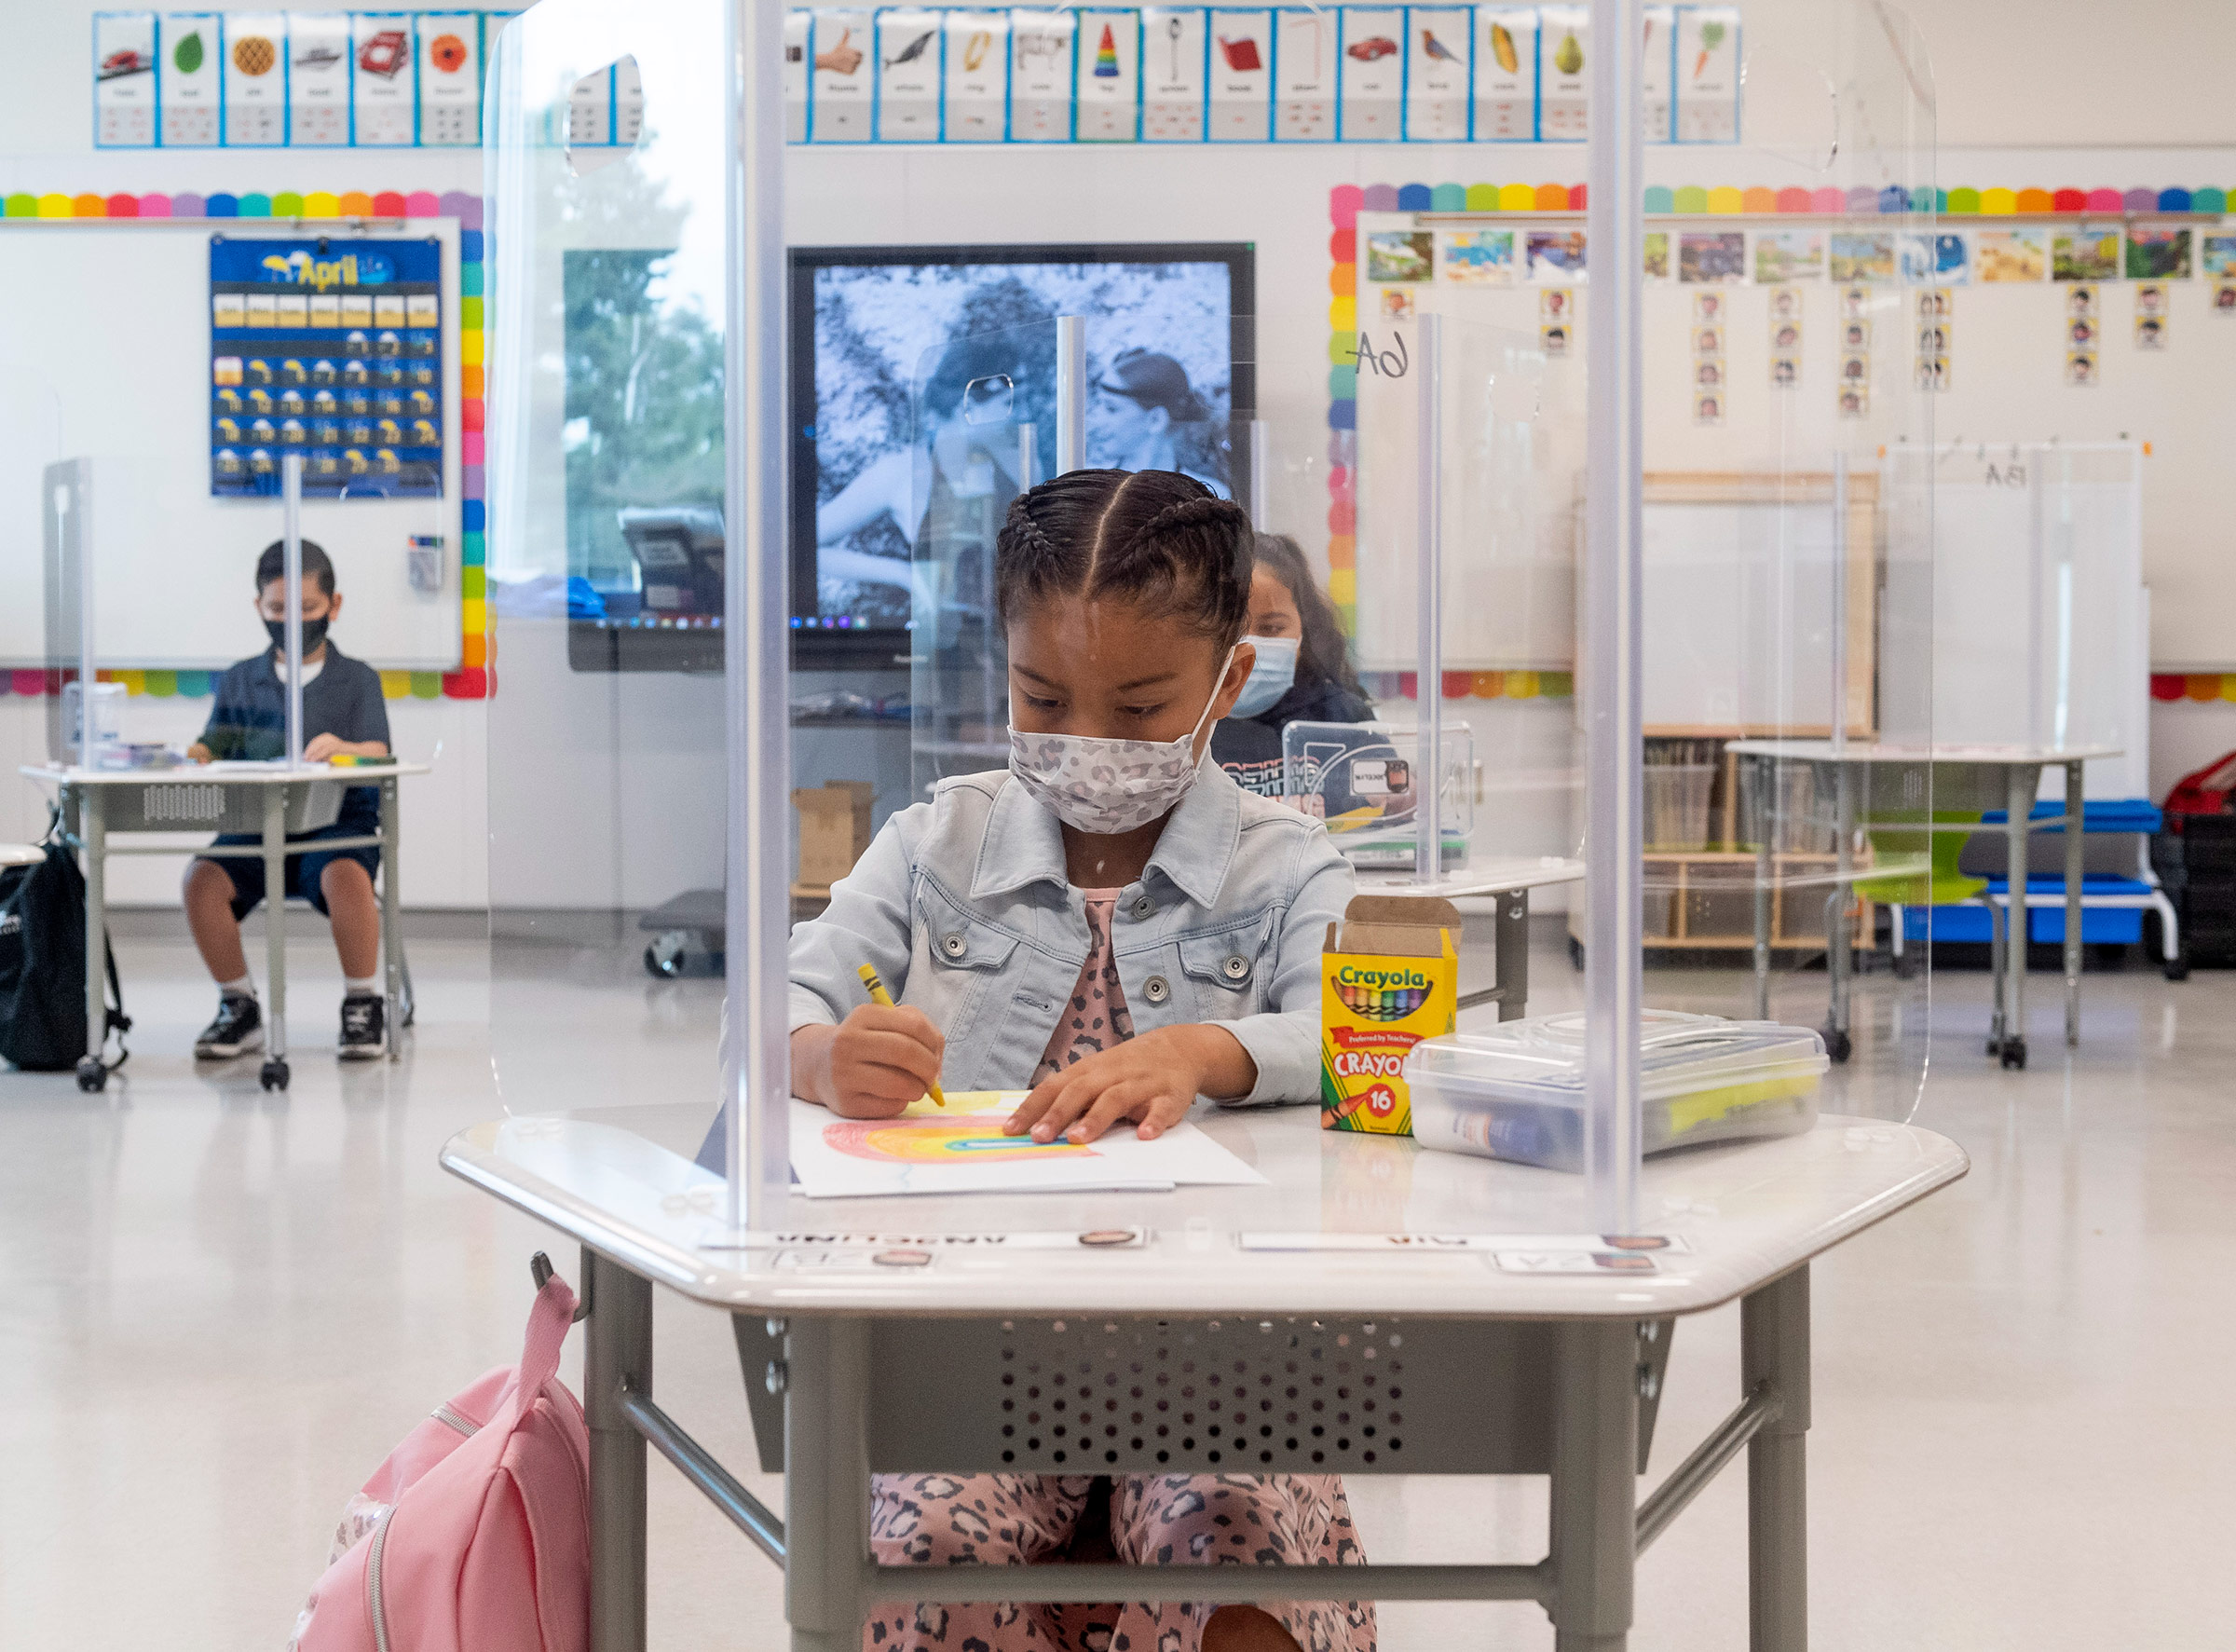 A student sits in a classroom at Sunkist Elementary in Anaheim, California, on April 21.